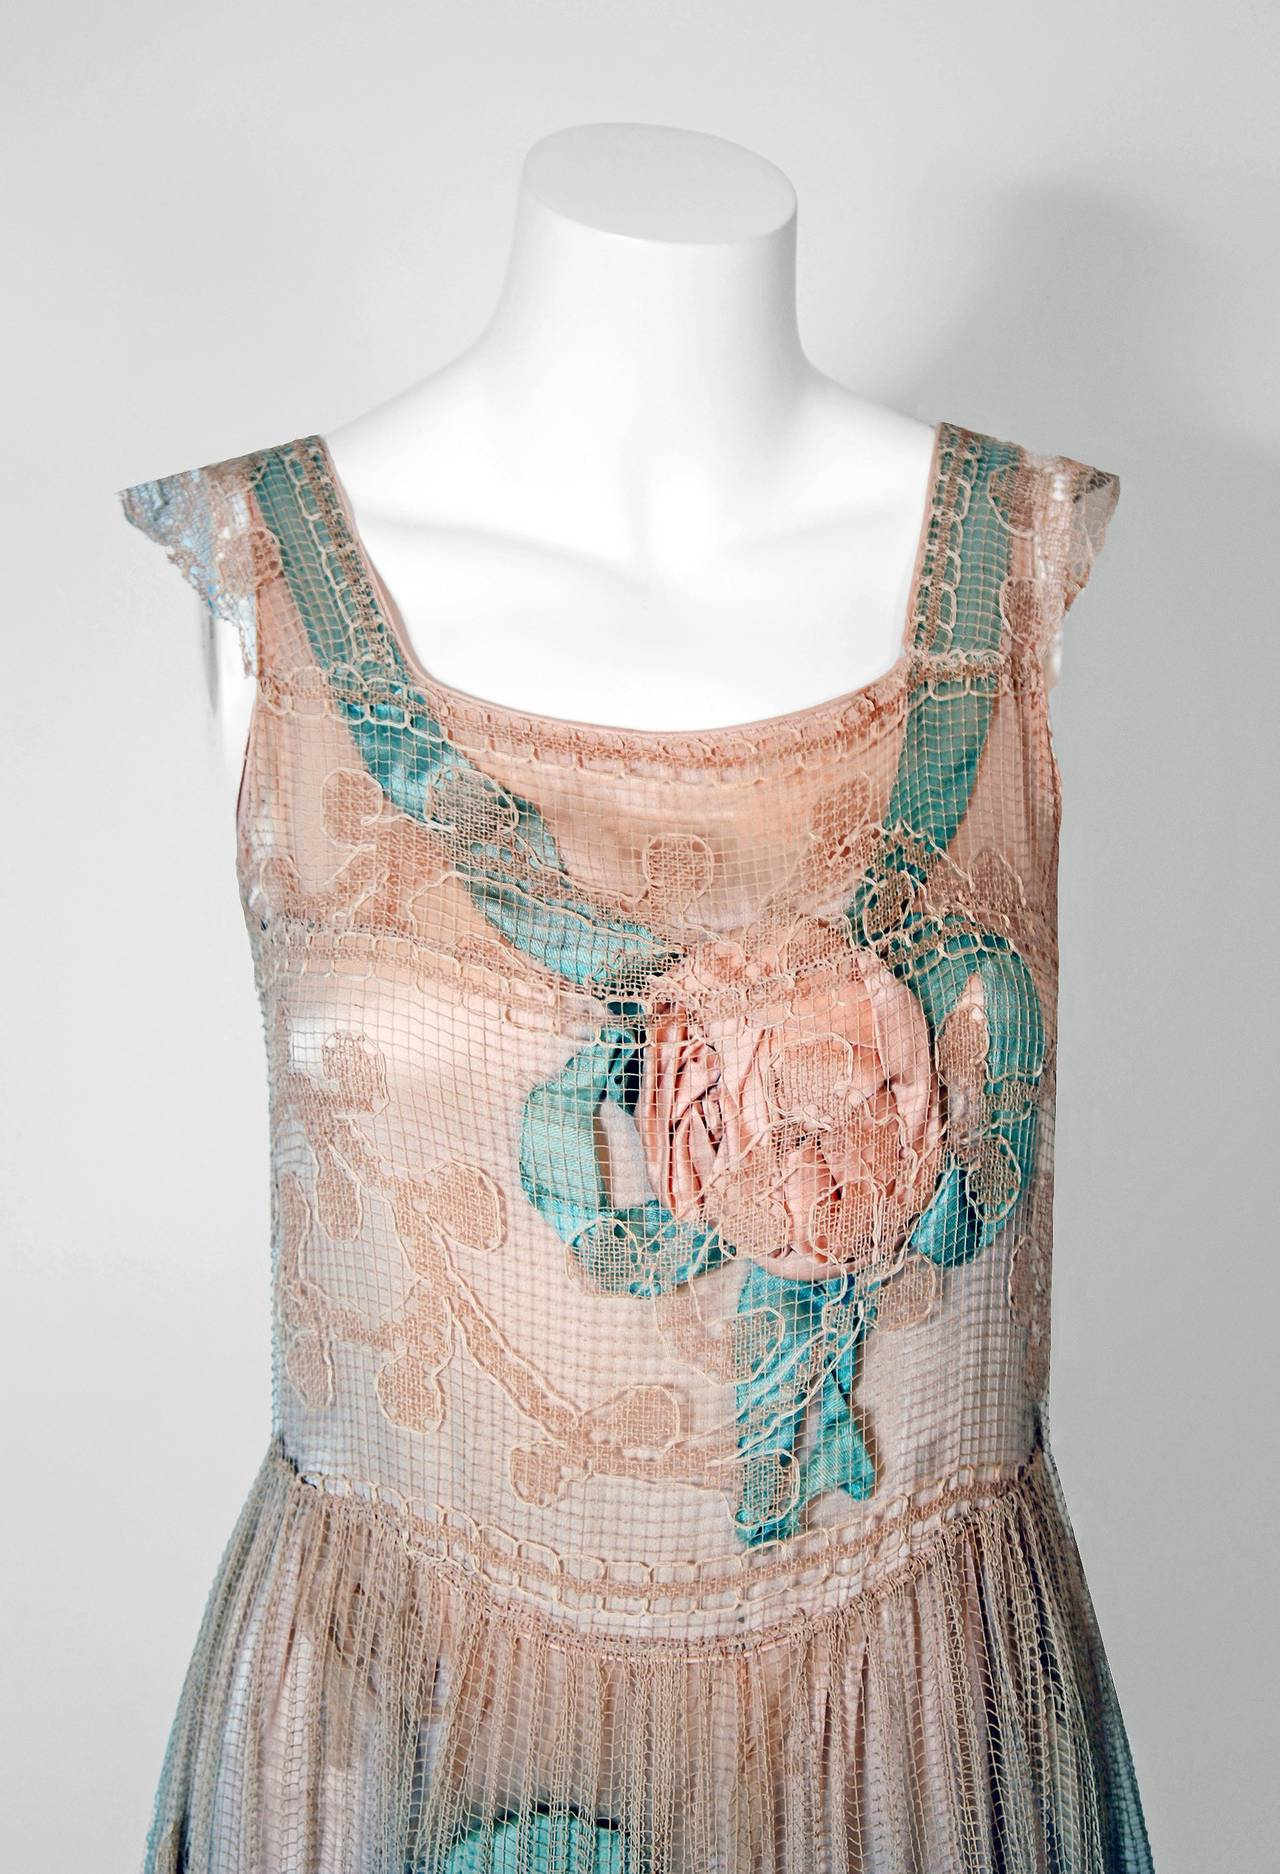 Breathtaking 1920's museum quality dress with two layers cleverly designed to complement each other; a fine filet-lace outer layer with a foliate design over an ecru silk-crepe slip layer embroidered with pastel silk-ribbon rosettes.  The rosettes